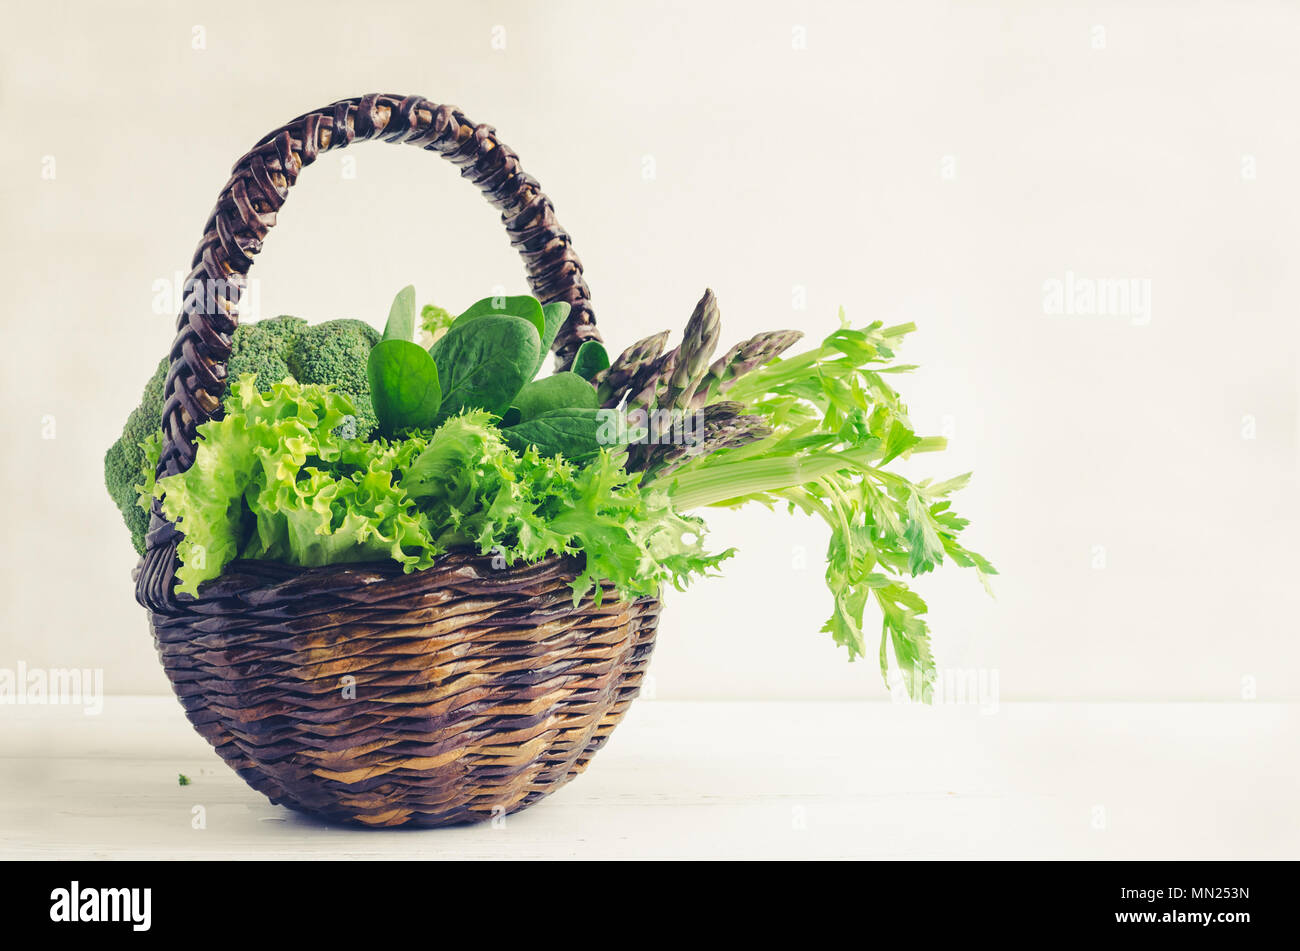 Assorted green vegetables in a basket on white wooden background with place for text. Fresh veggies and greens: spinach, fennel, celery, lettuce, aspa Stock Photo